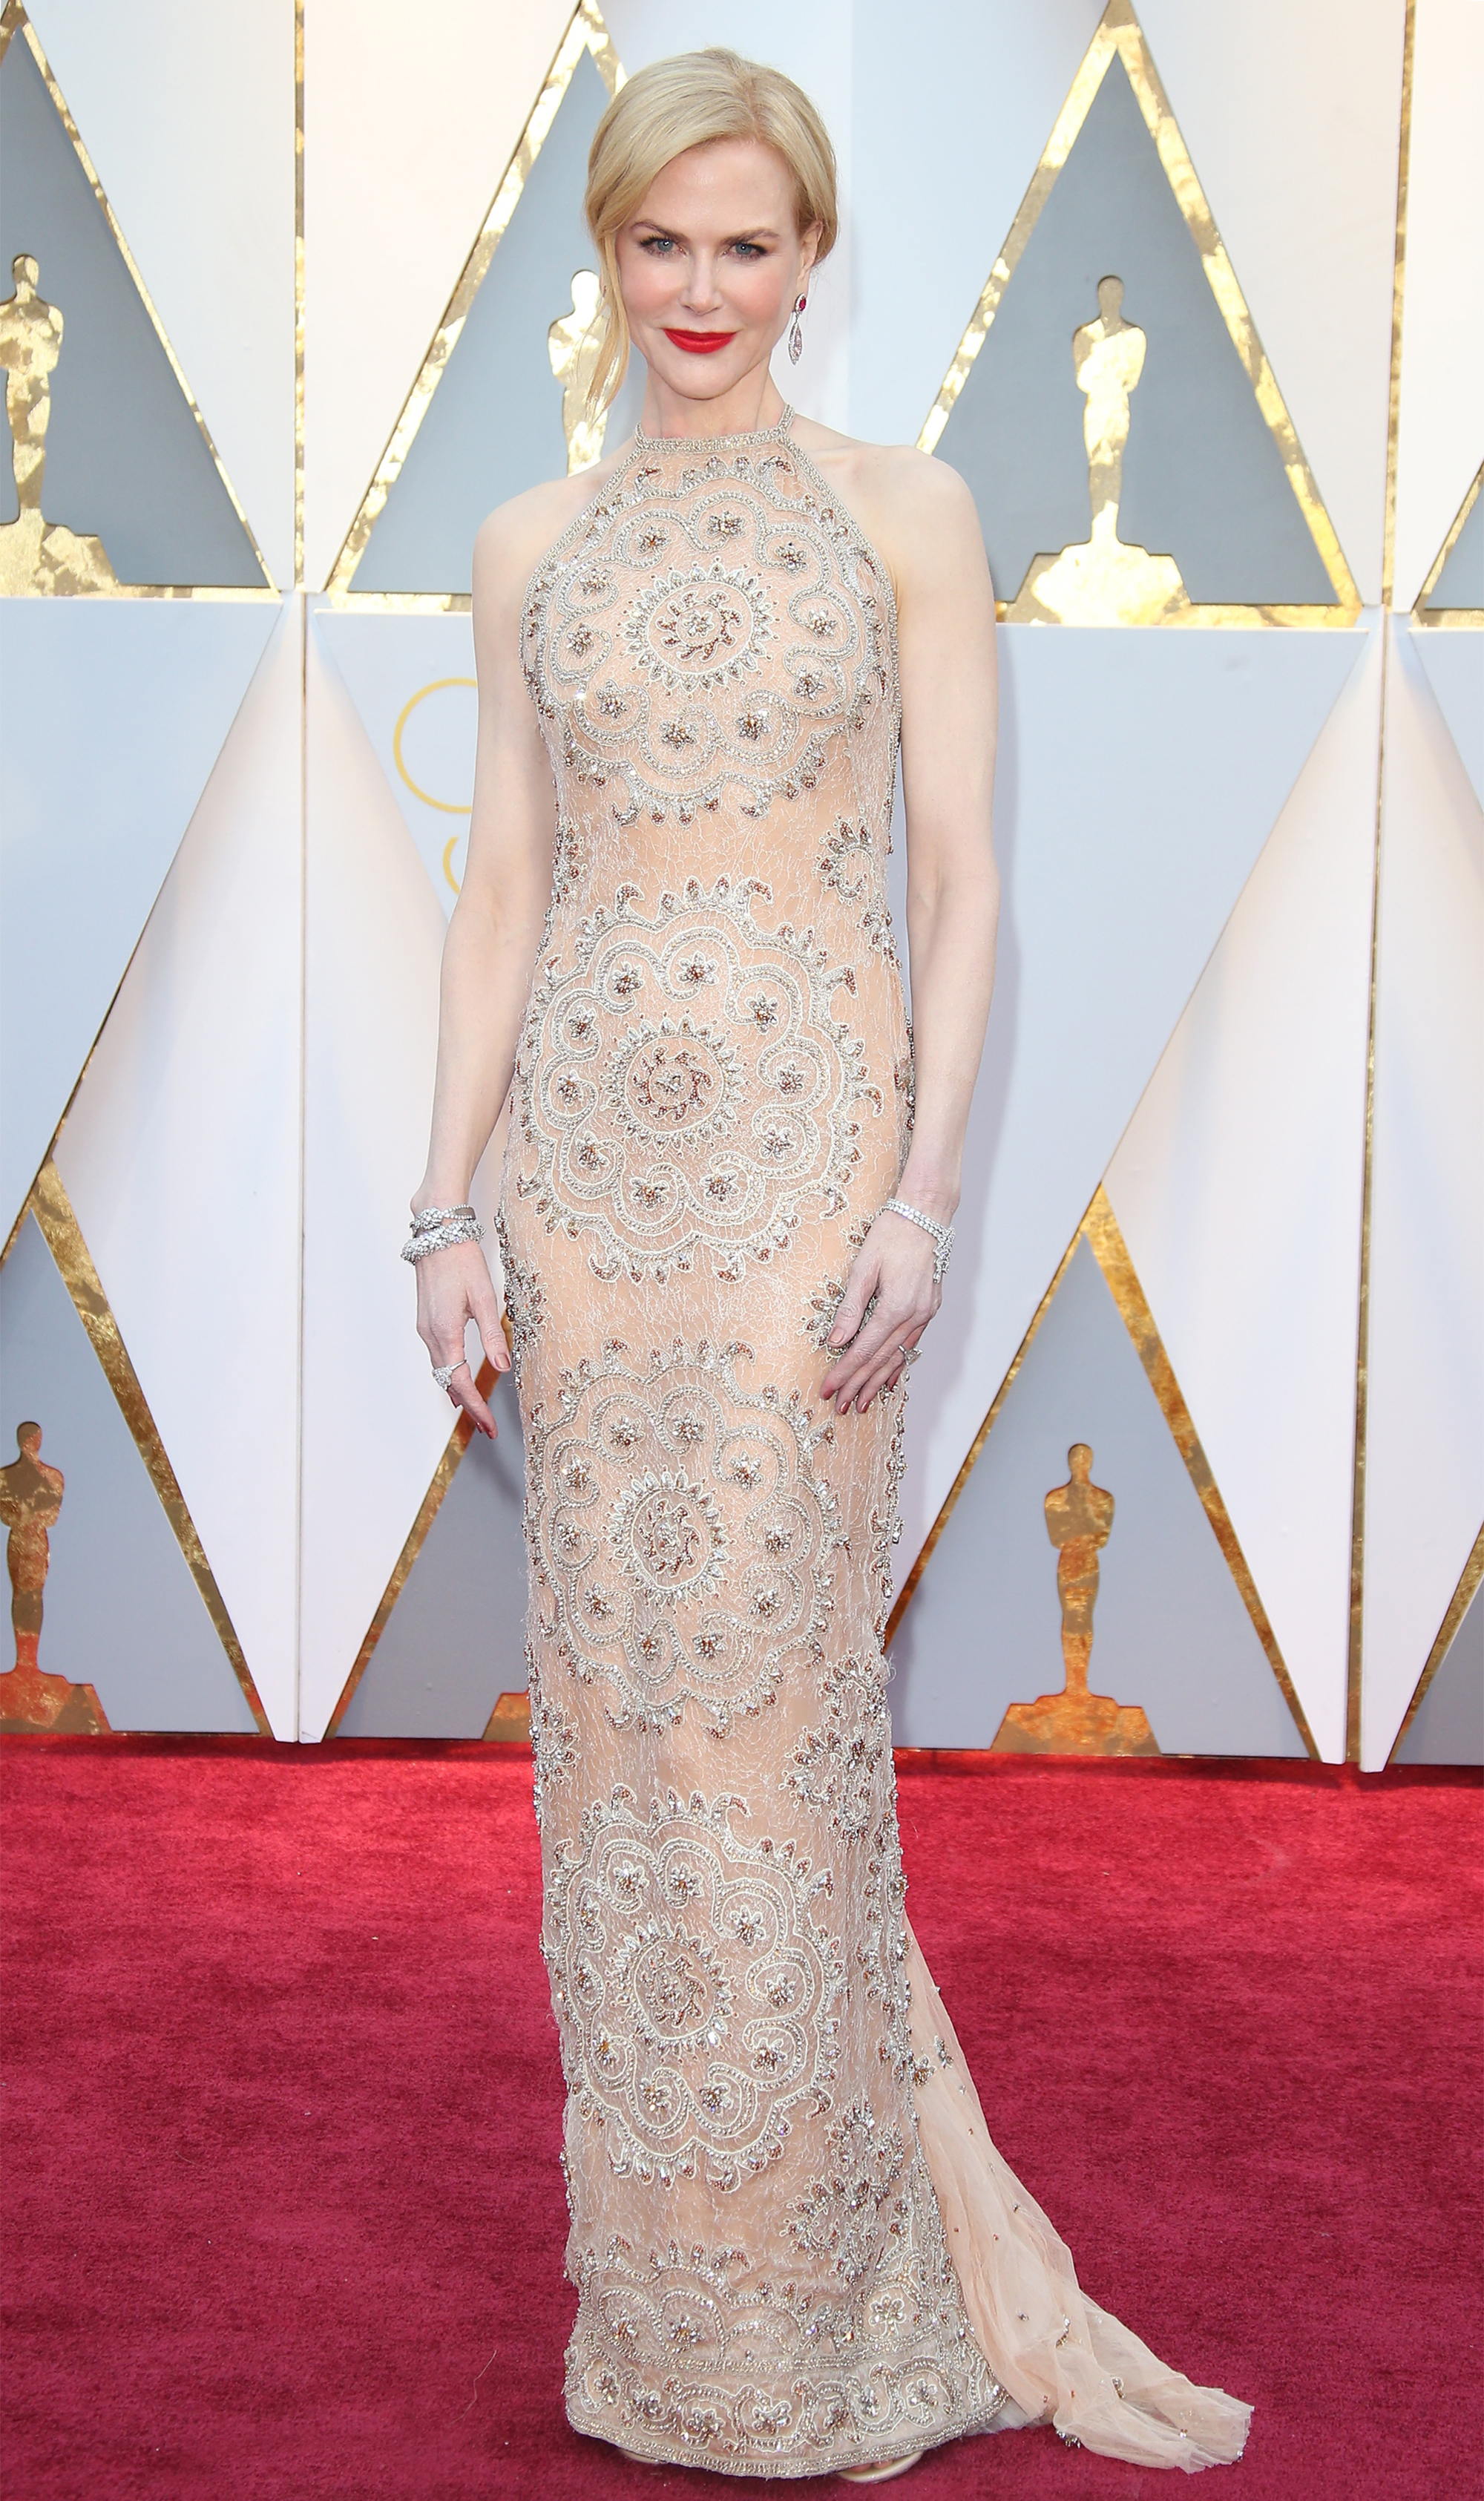 Nicole Kidman Dress Alterations Lead